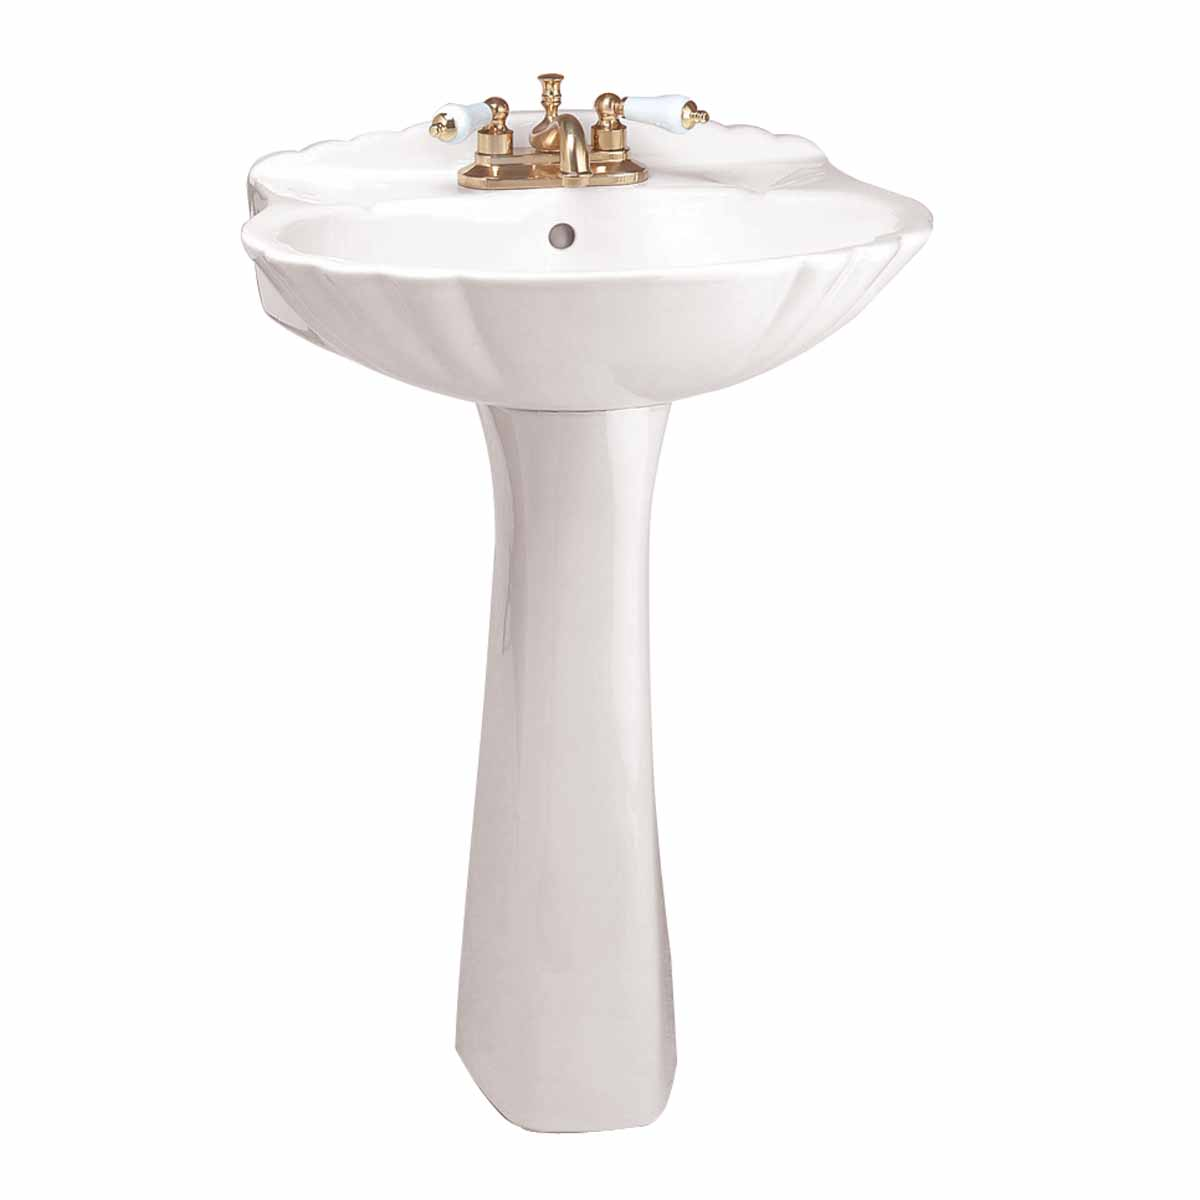 Bathrooms Pedestal Sink White China Sheffield Deluxe